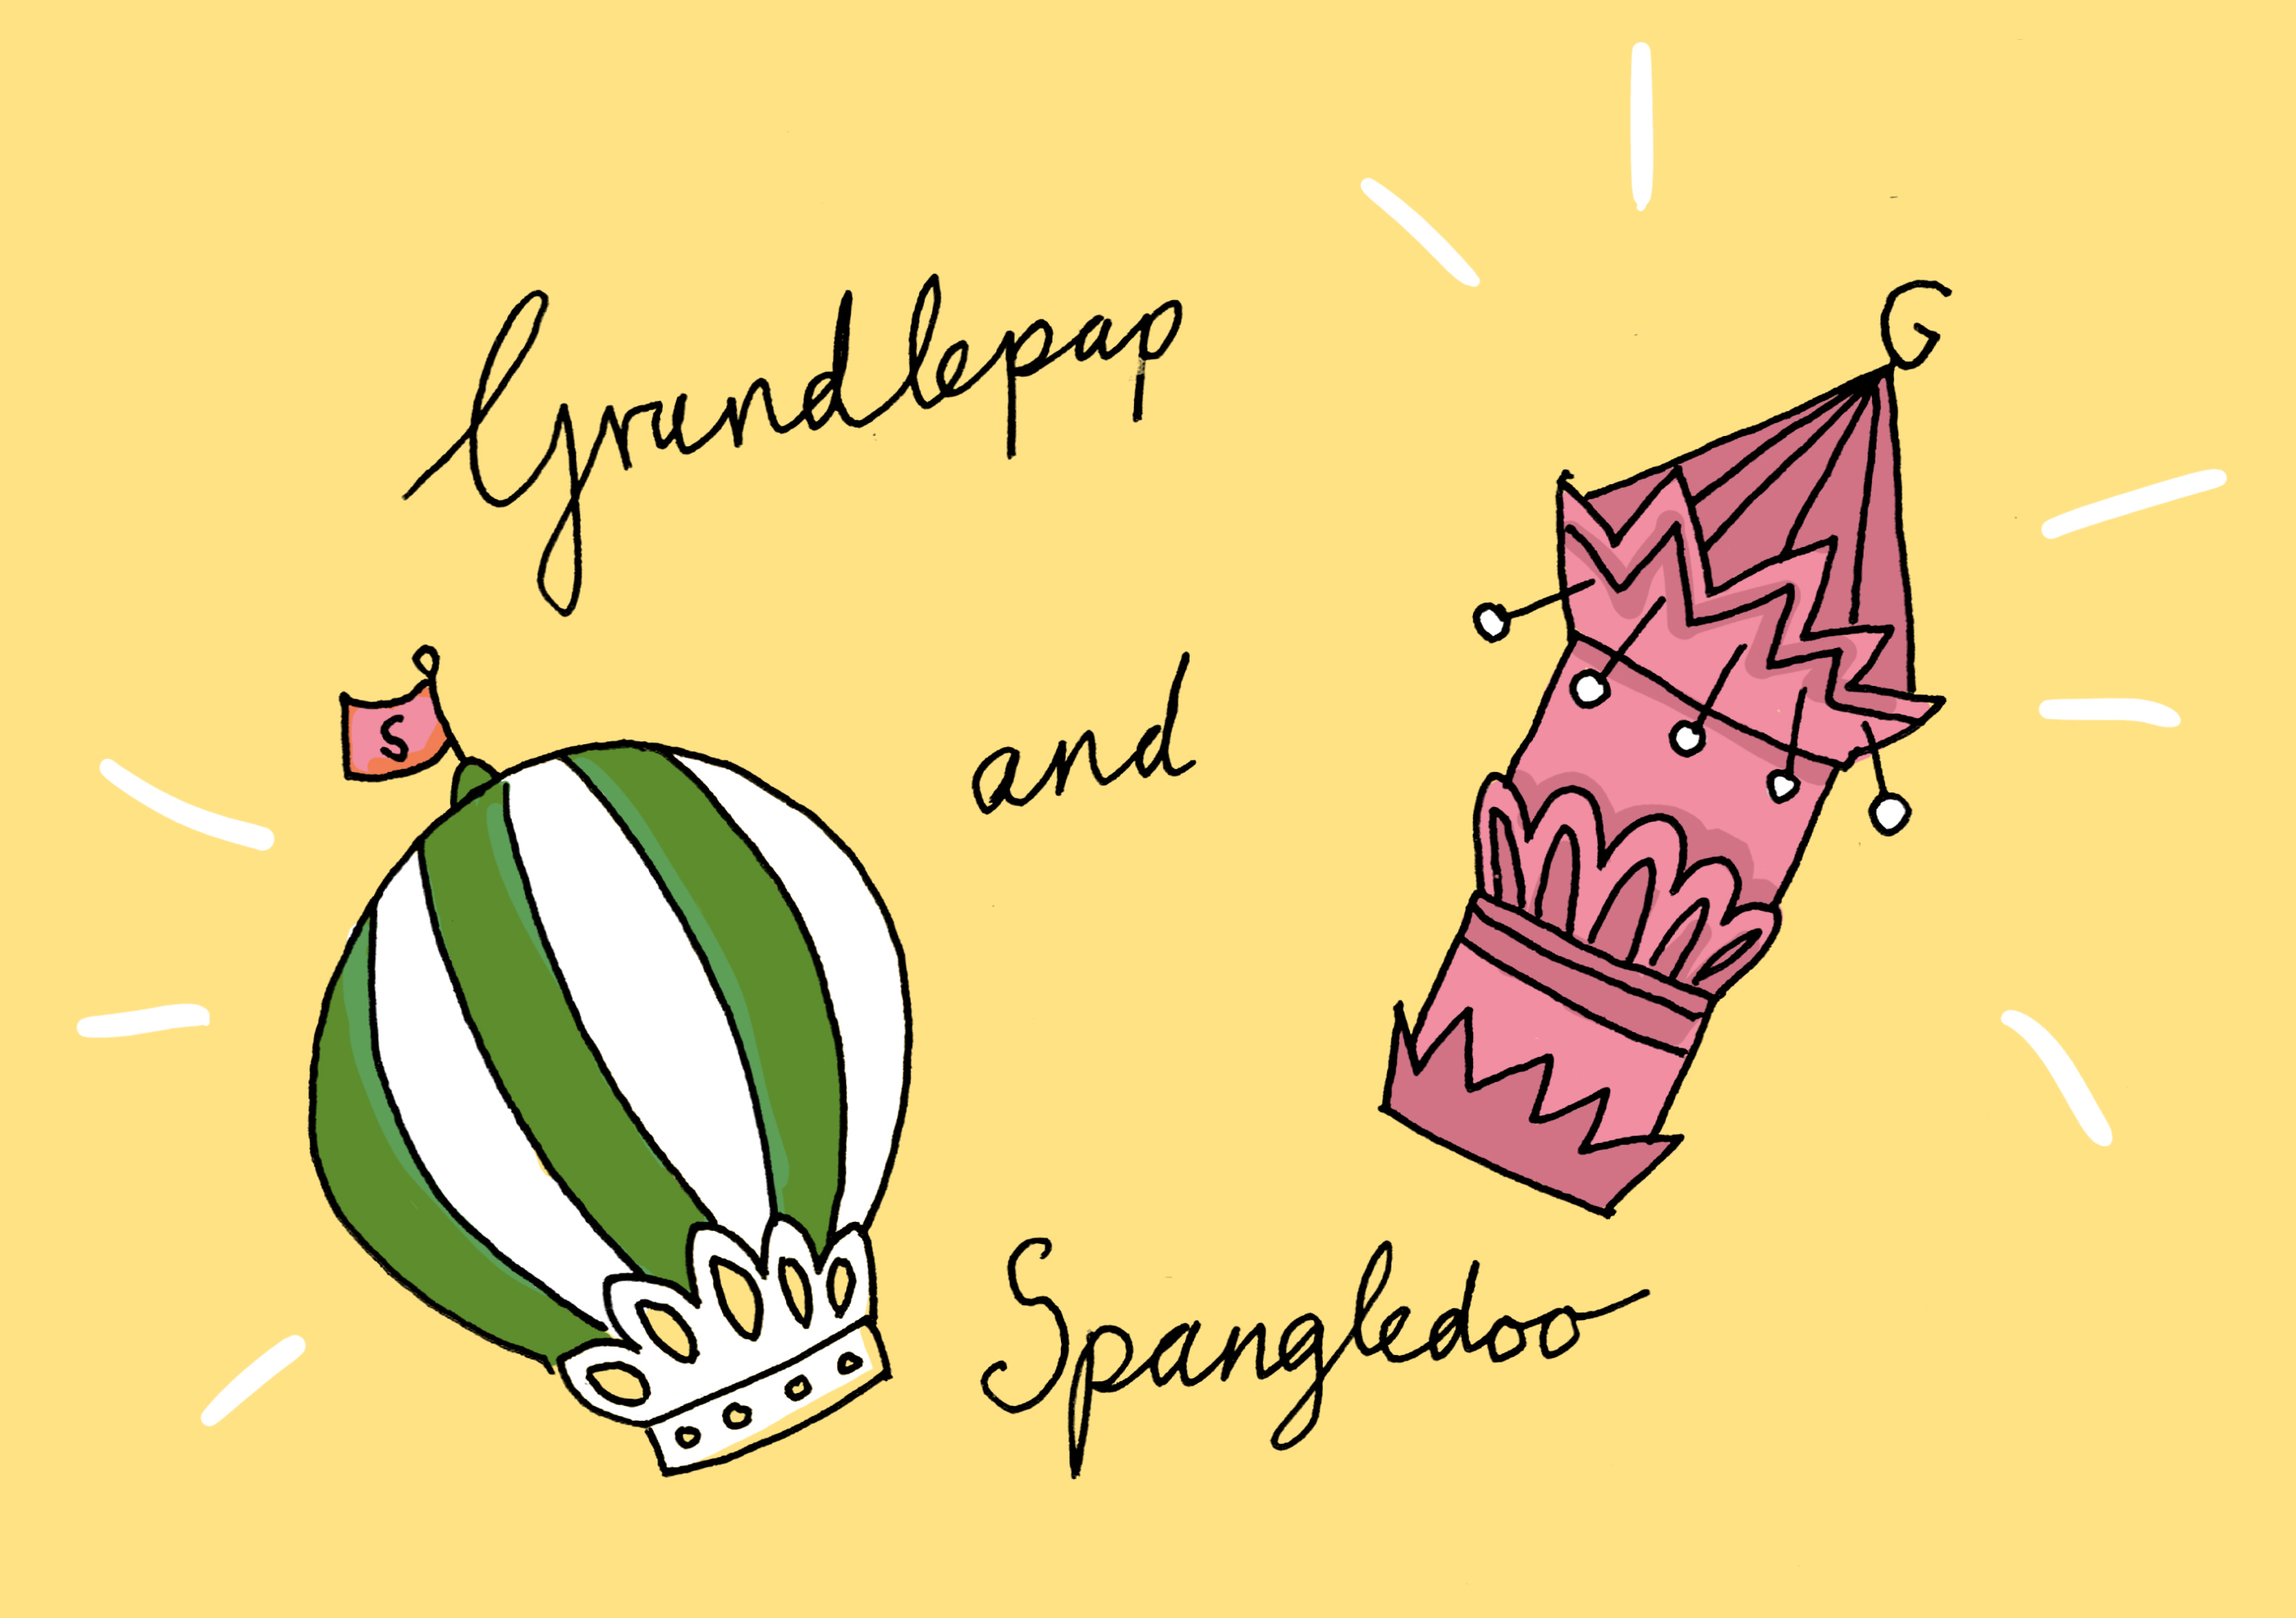 Grundlepap and Spangledoo